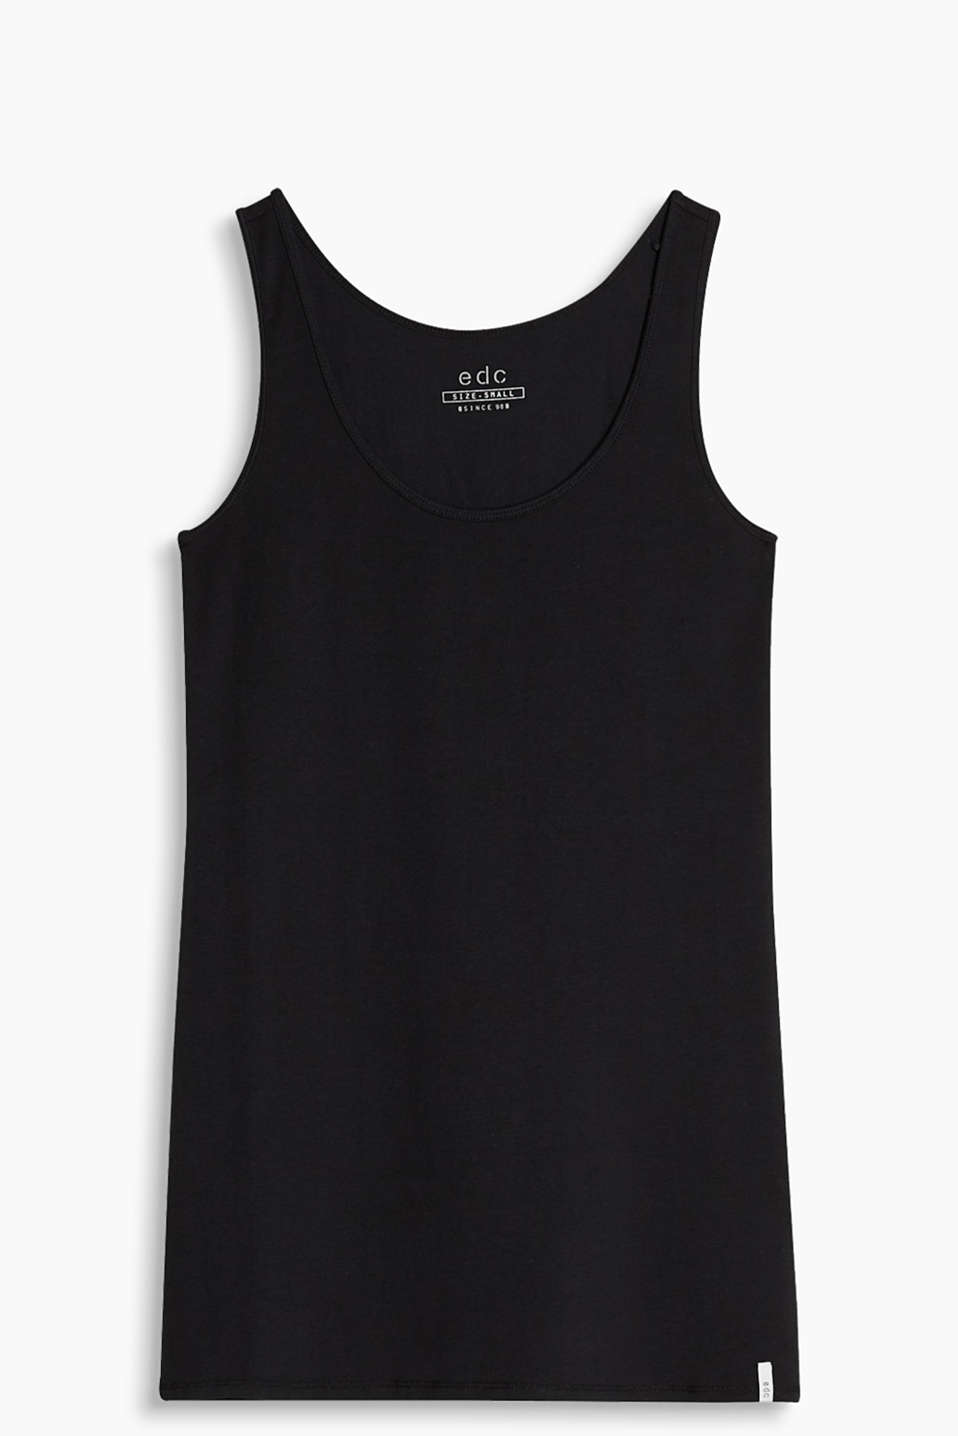 Simple tank top in slinky cotton jersey with added stretch for comfort